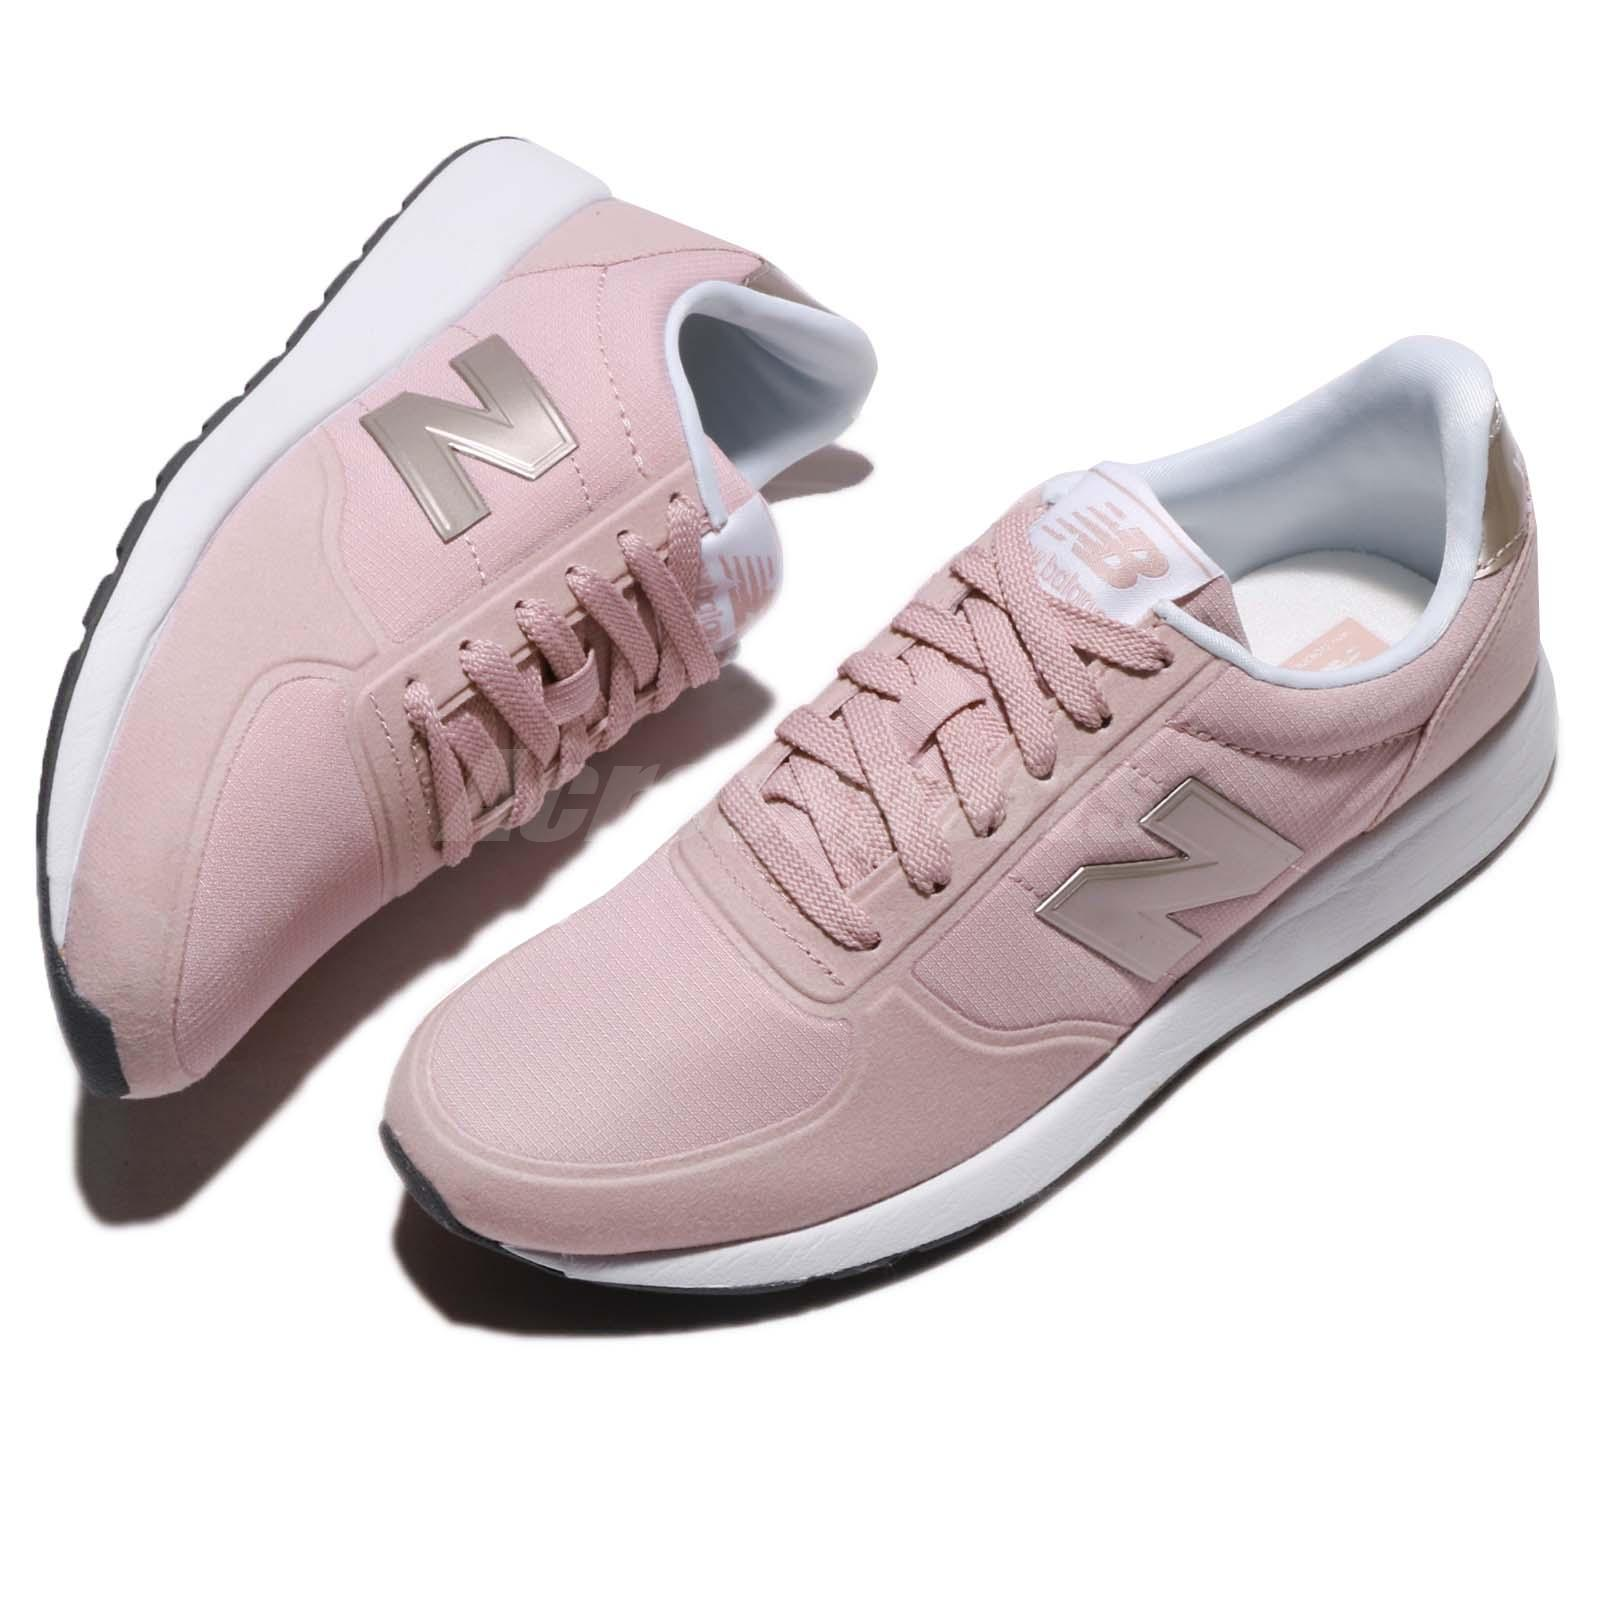 New Balance WS215RC B 215 Pink Silver Women Running Shoes Sneakers ... b4a0c247d1c15